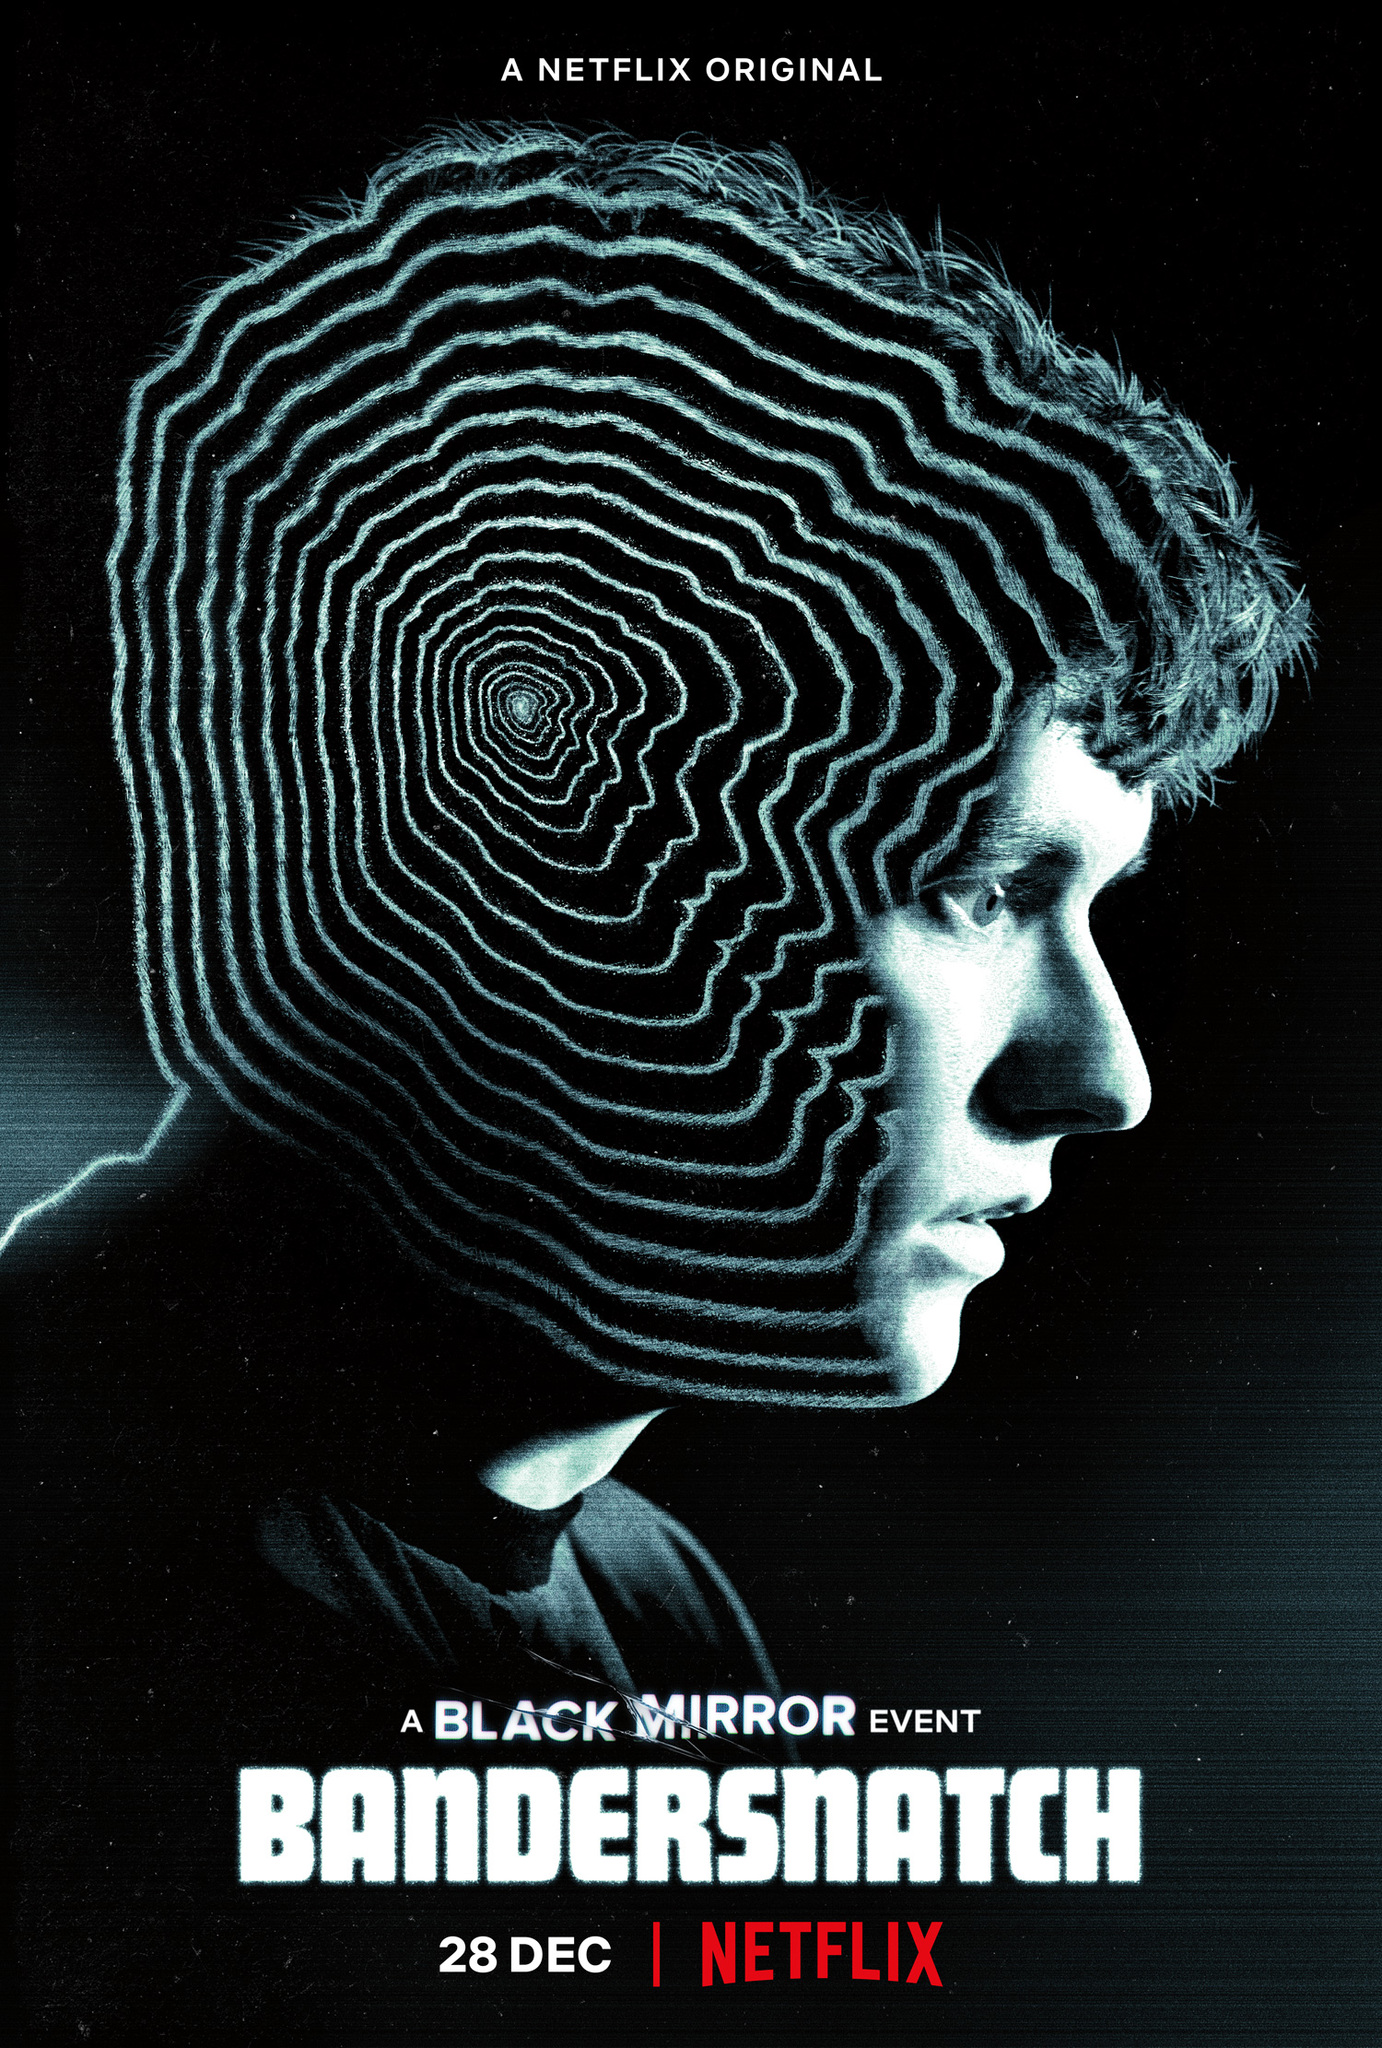 دانلود فیلم Black Mirror Bandersnatch 2018